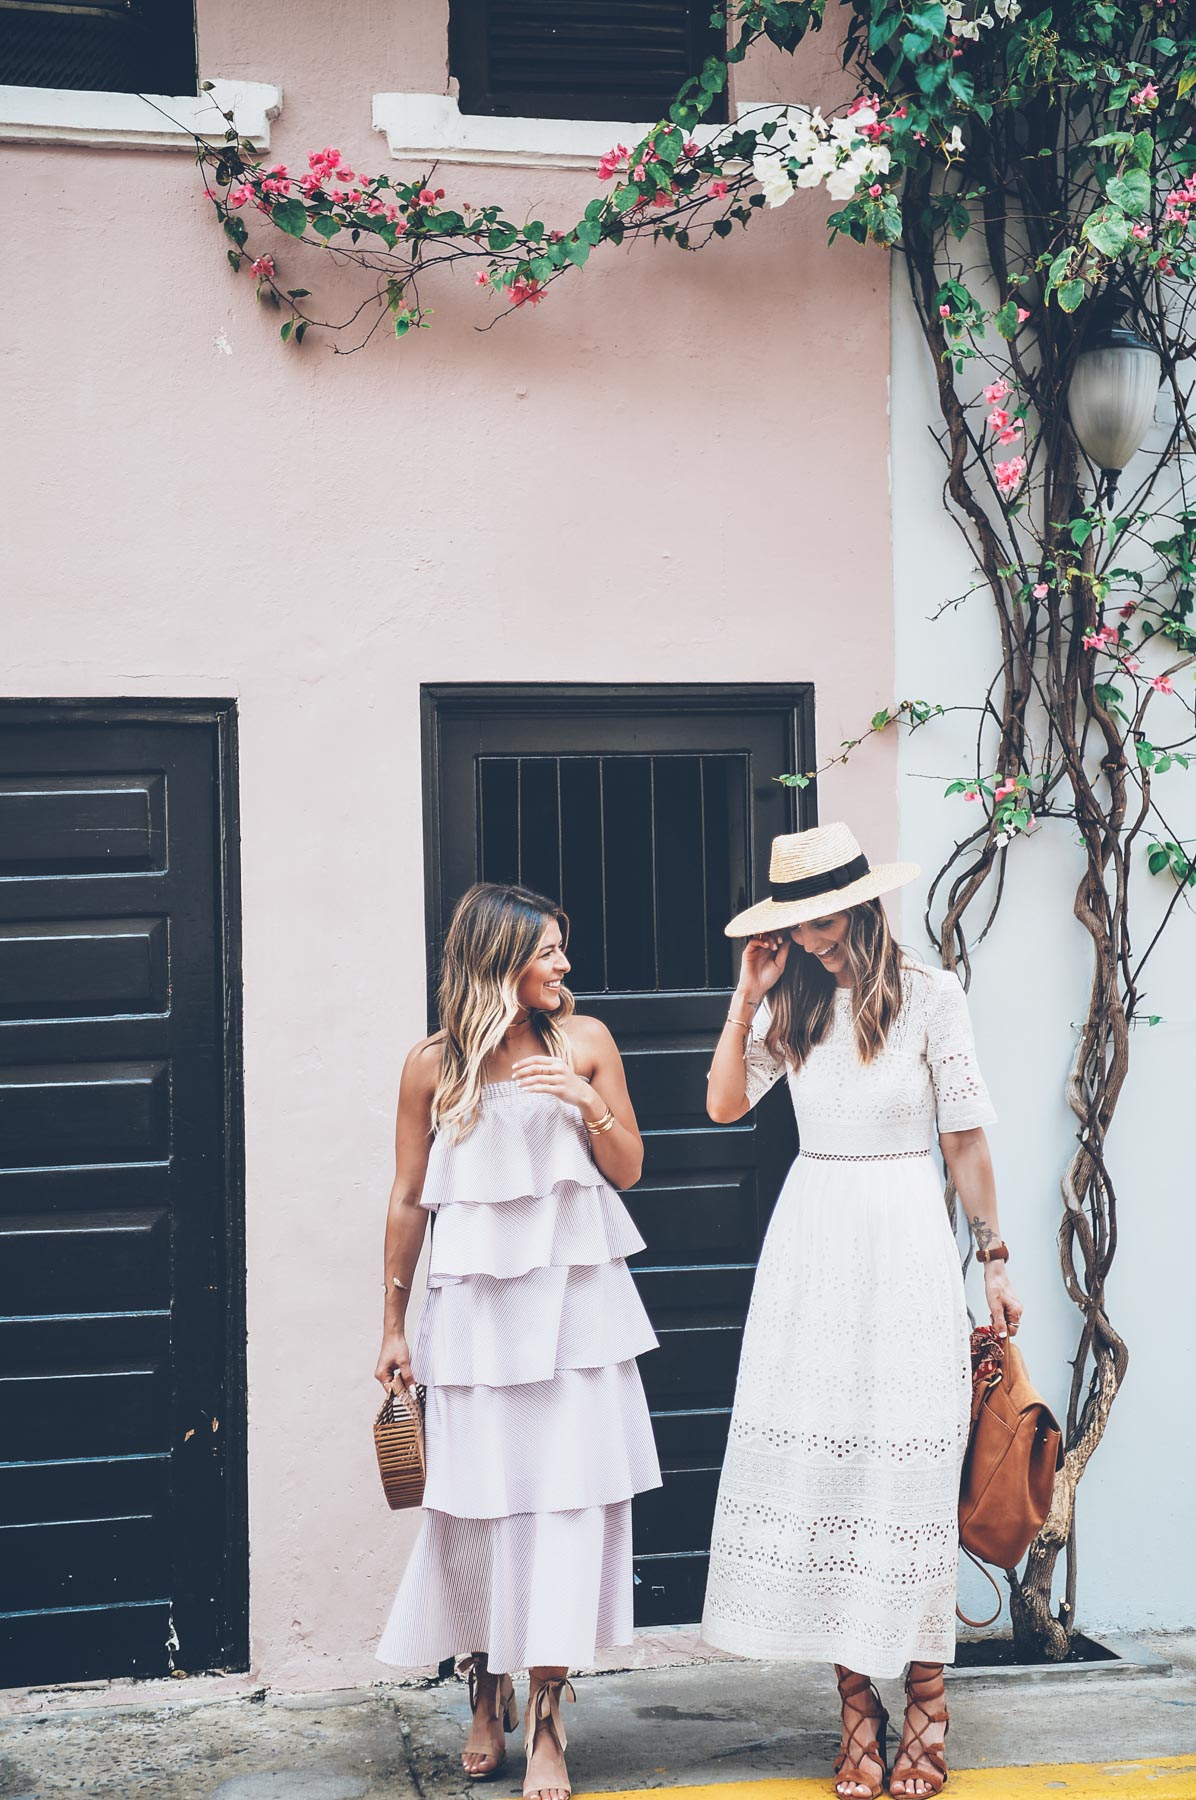 Jess Kirby and Pam Hetlinger wearing Prose and Poetry and French Connection dresses in Panama City Casco Viejo